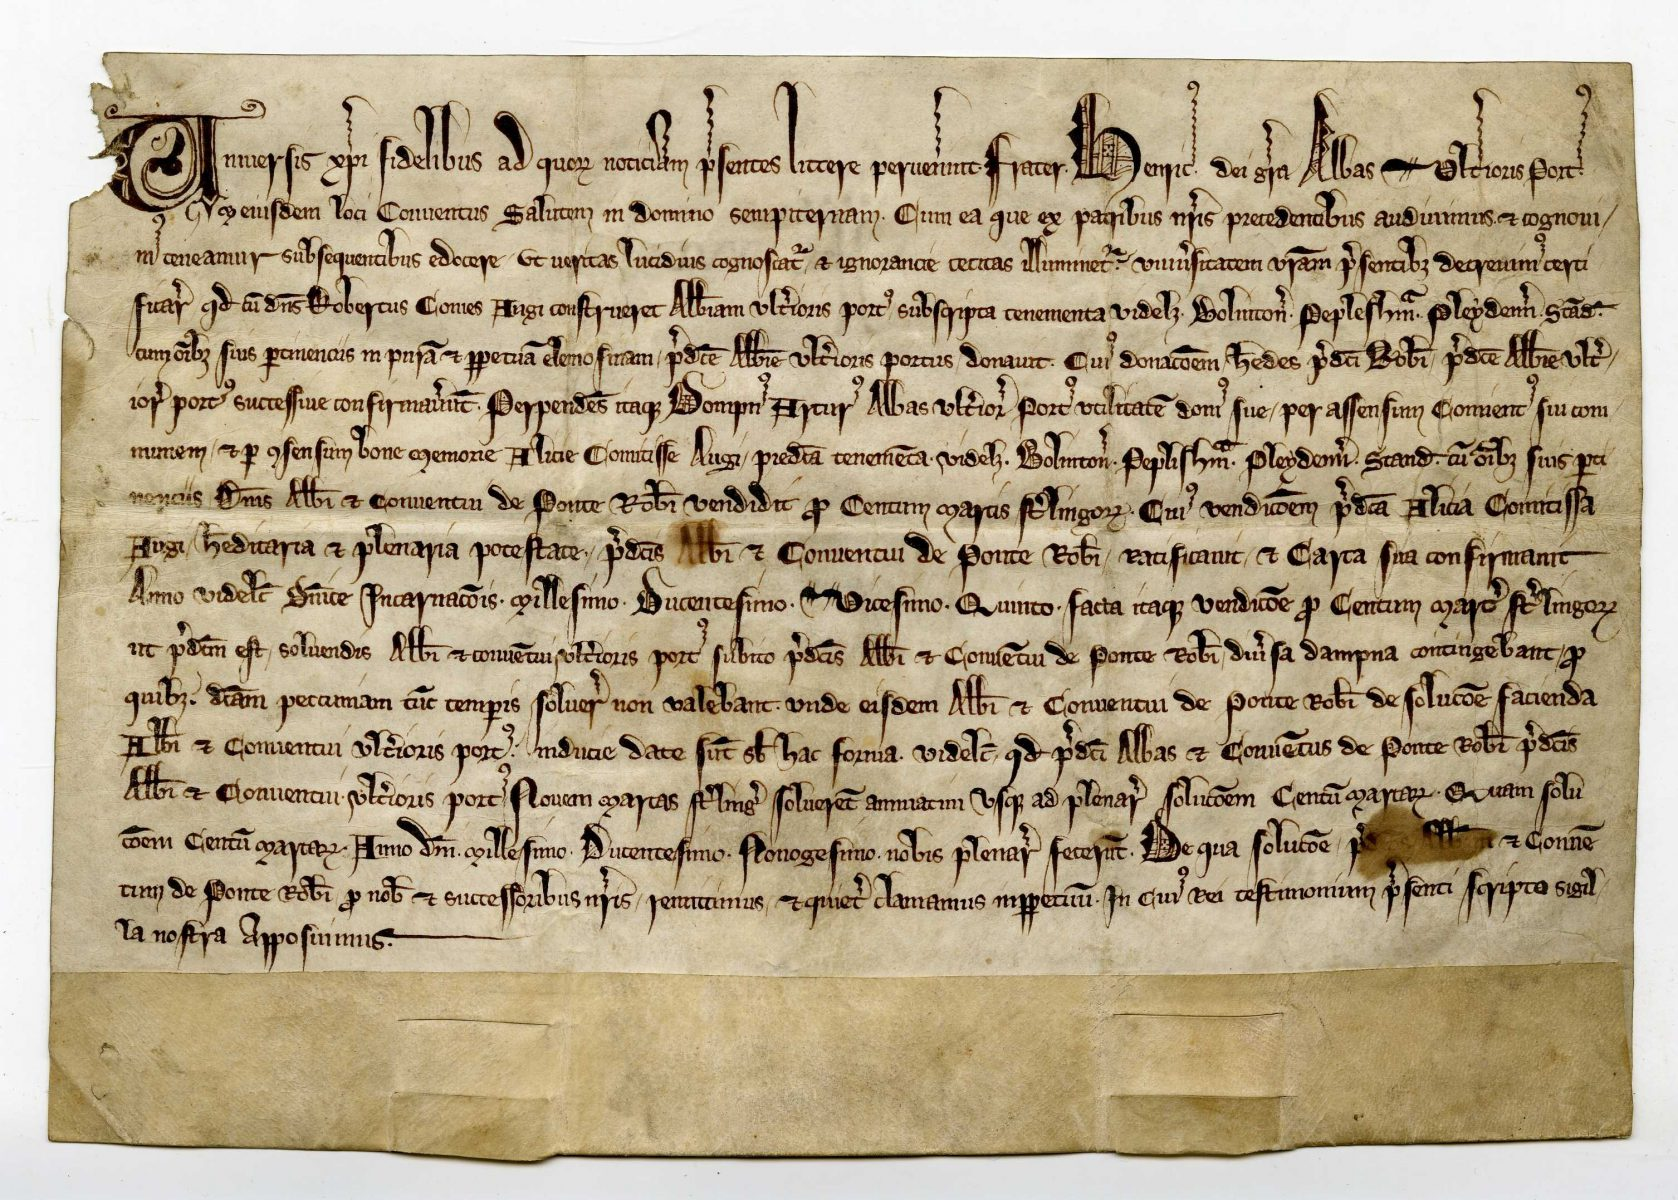 Certificate for payment by Henry abbot of Tréport to the abbot and convent of Robertsbridge